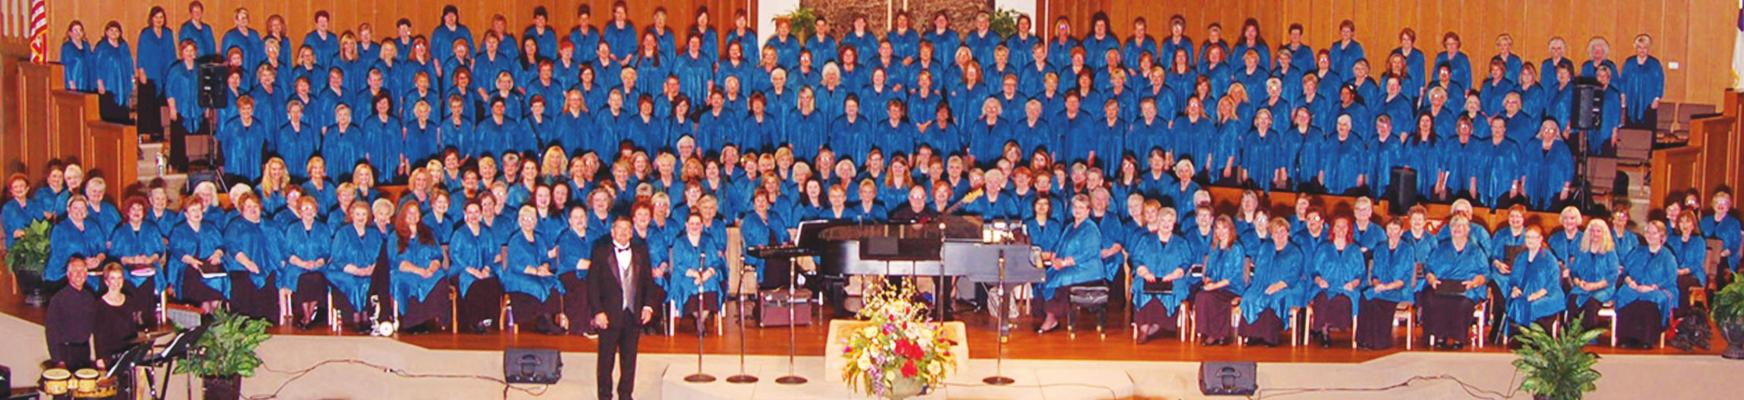 Singing Churchwomen will appear in concert